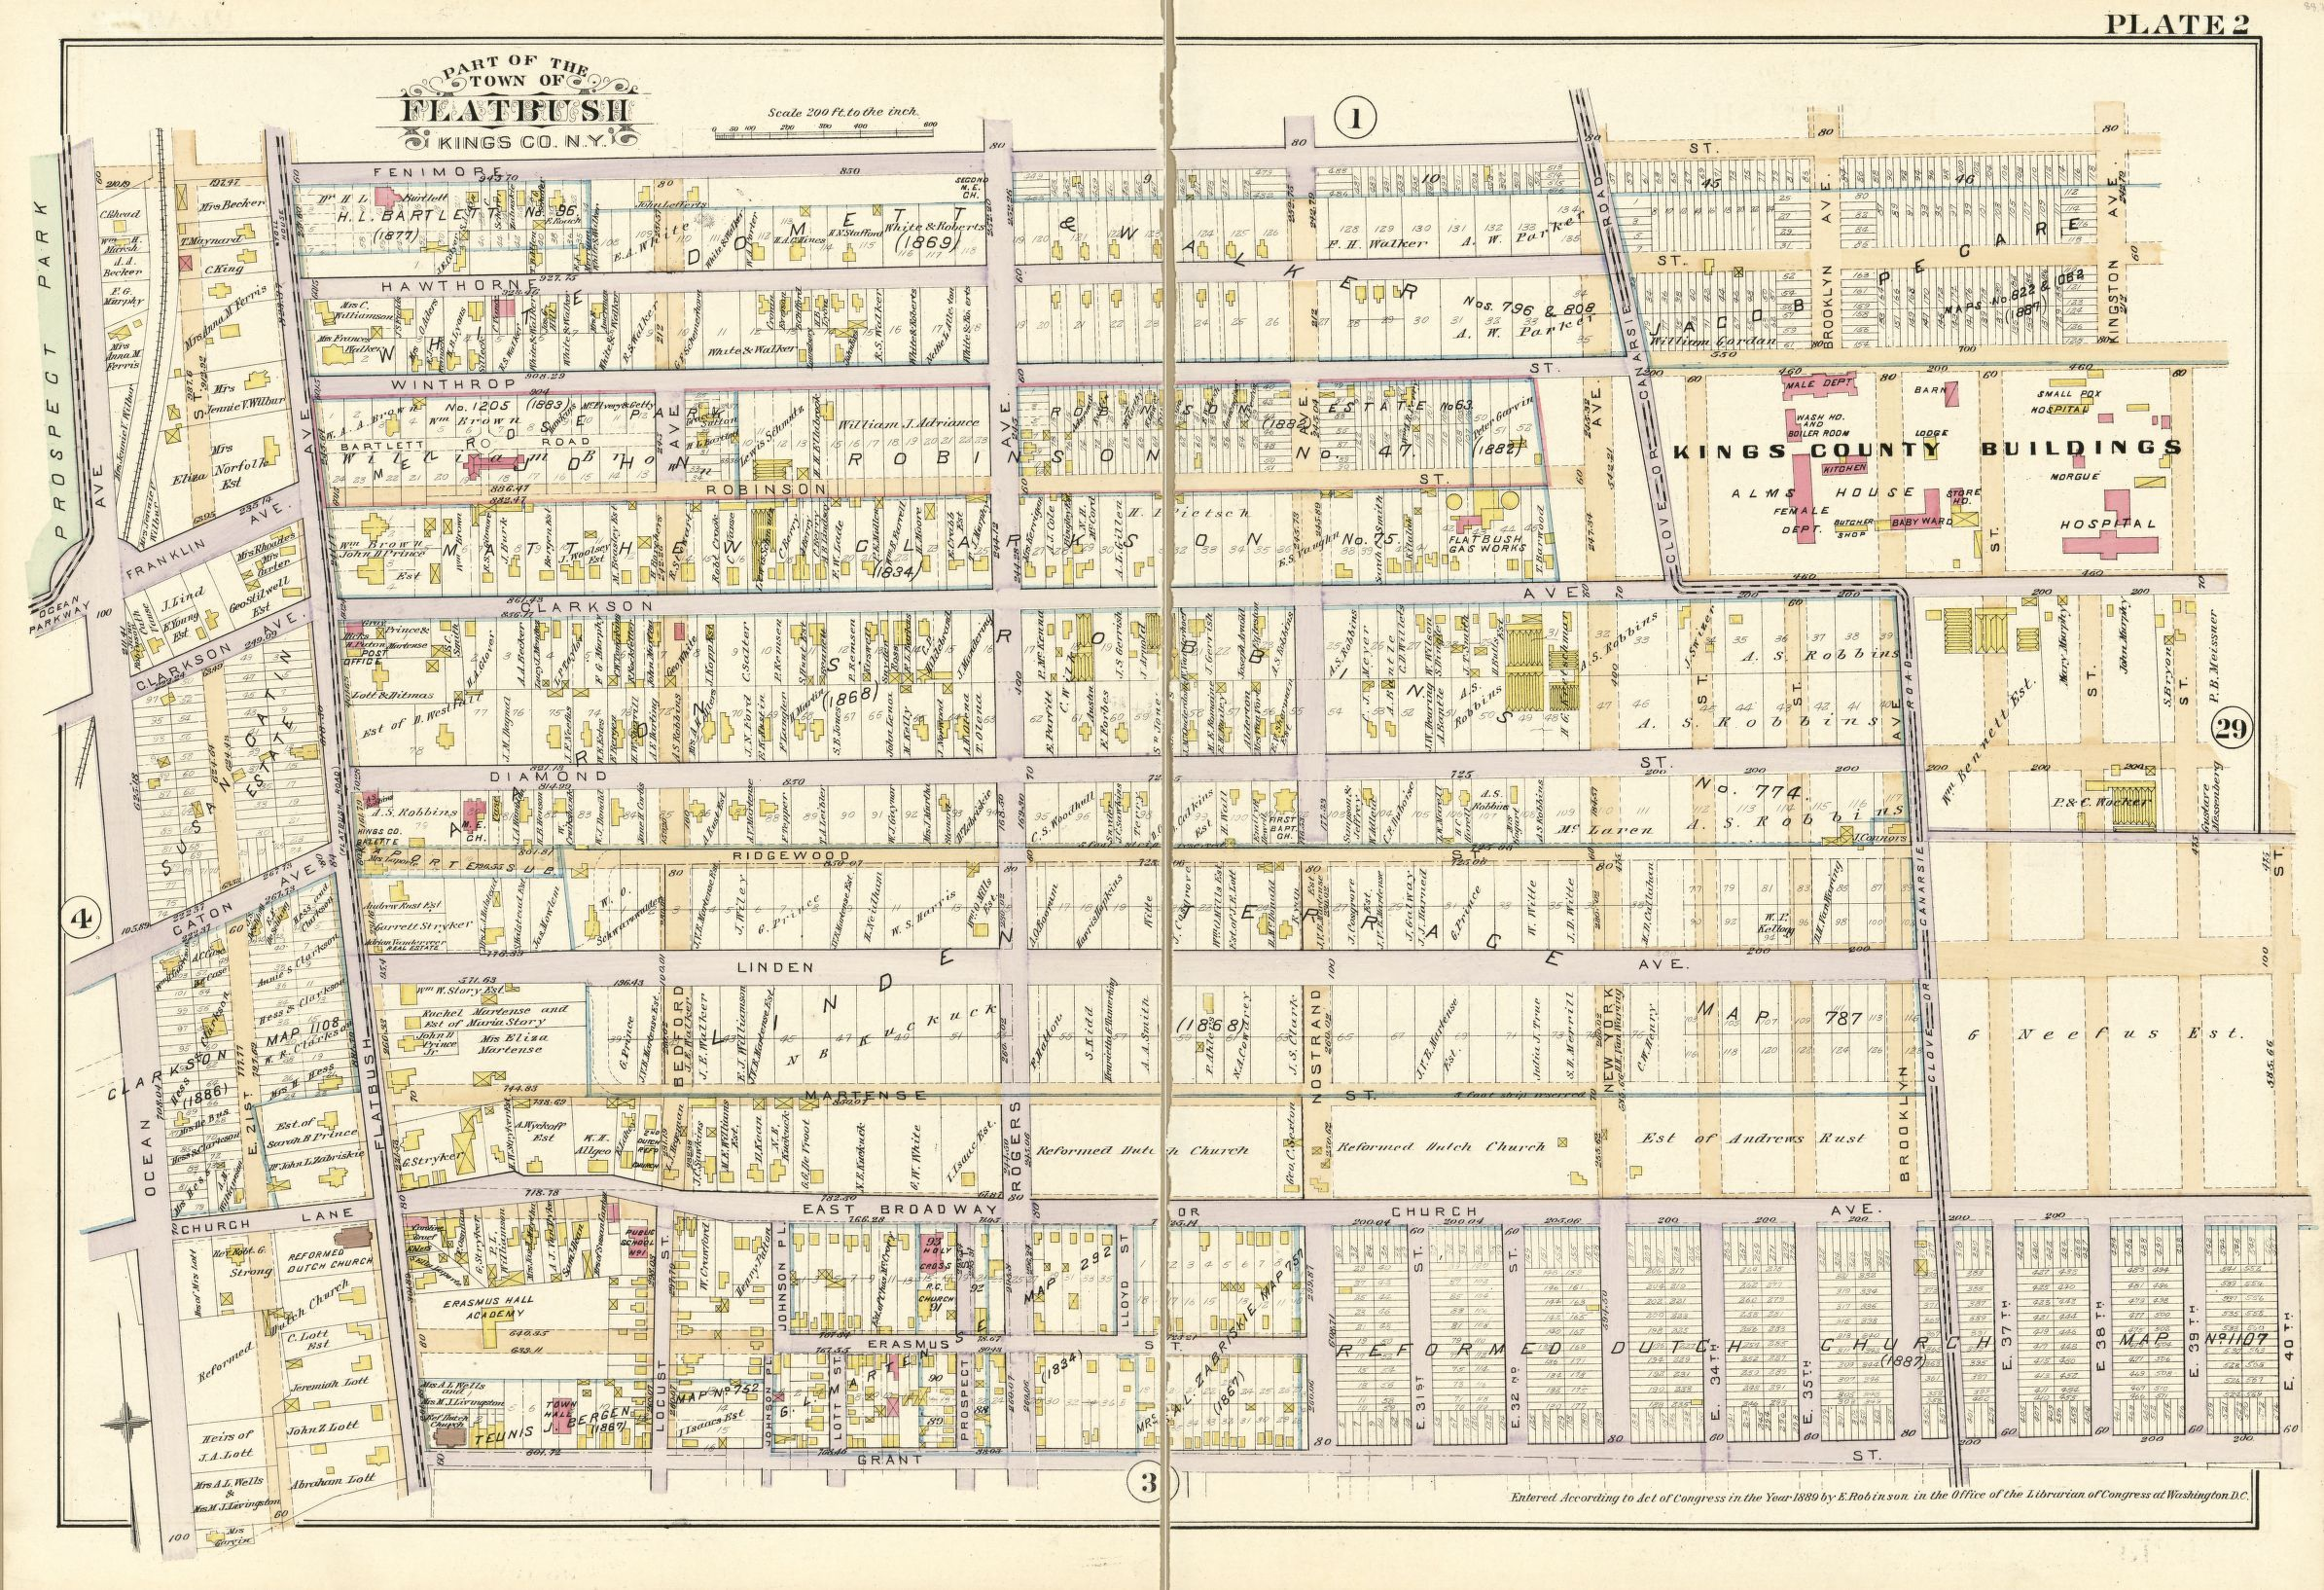 Plate 2 - Part of the Town of Flatbush Kings Co., N.Y. | Library of Congress